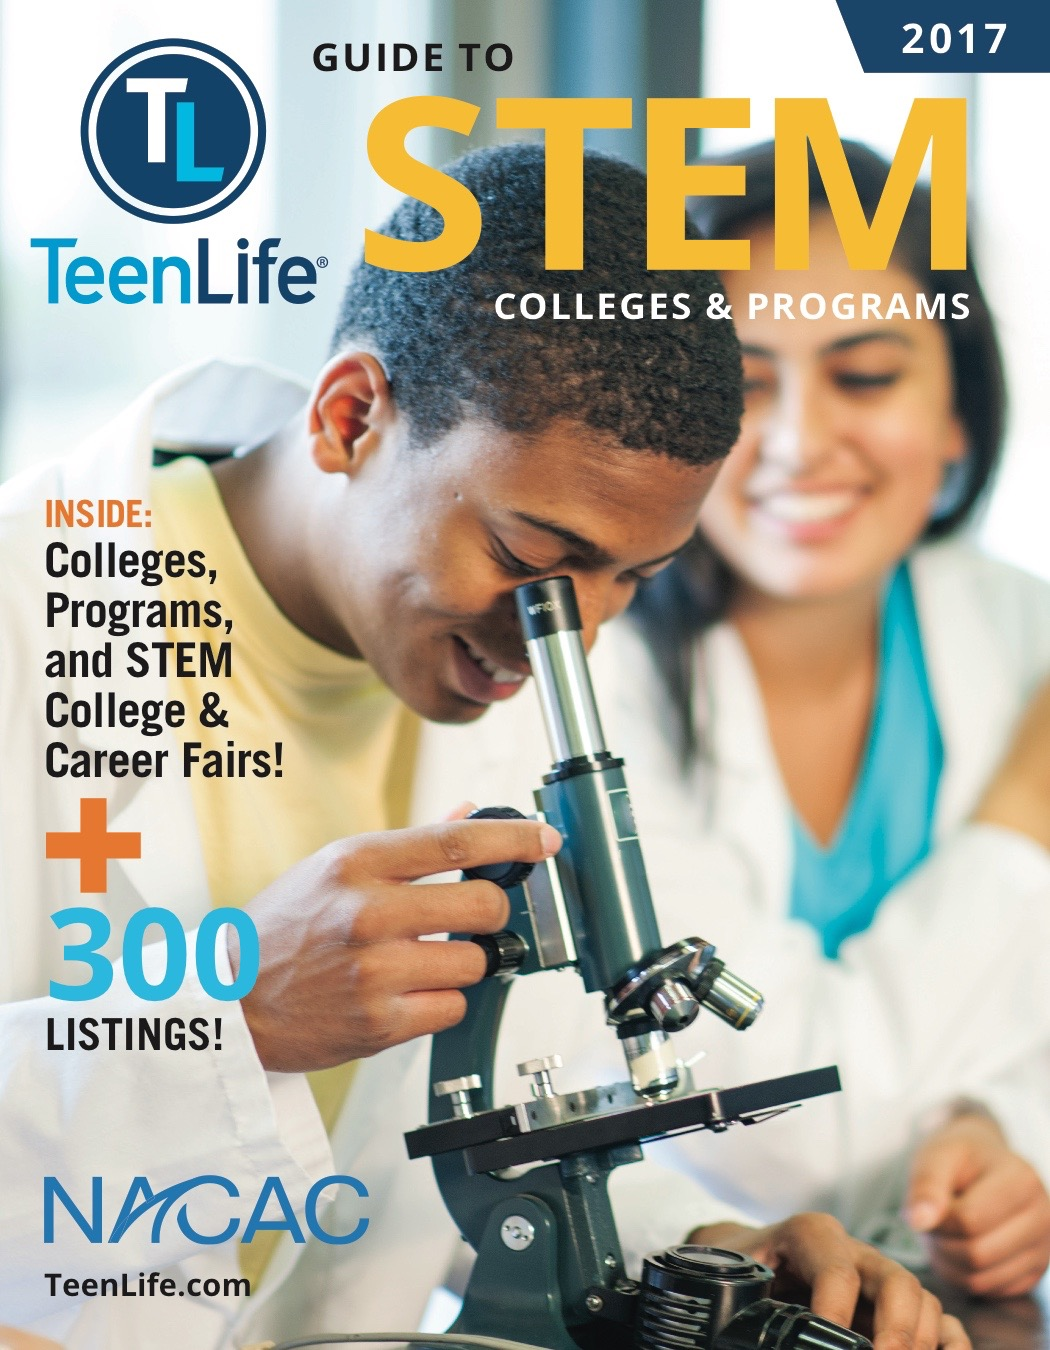 Guide to STEM Colleges & Programs-TeenLife